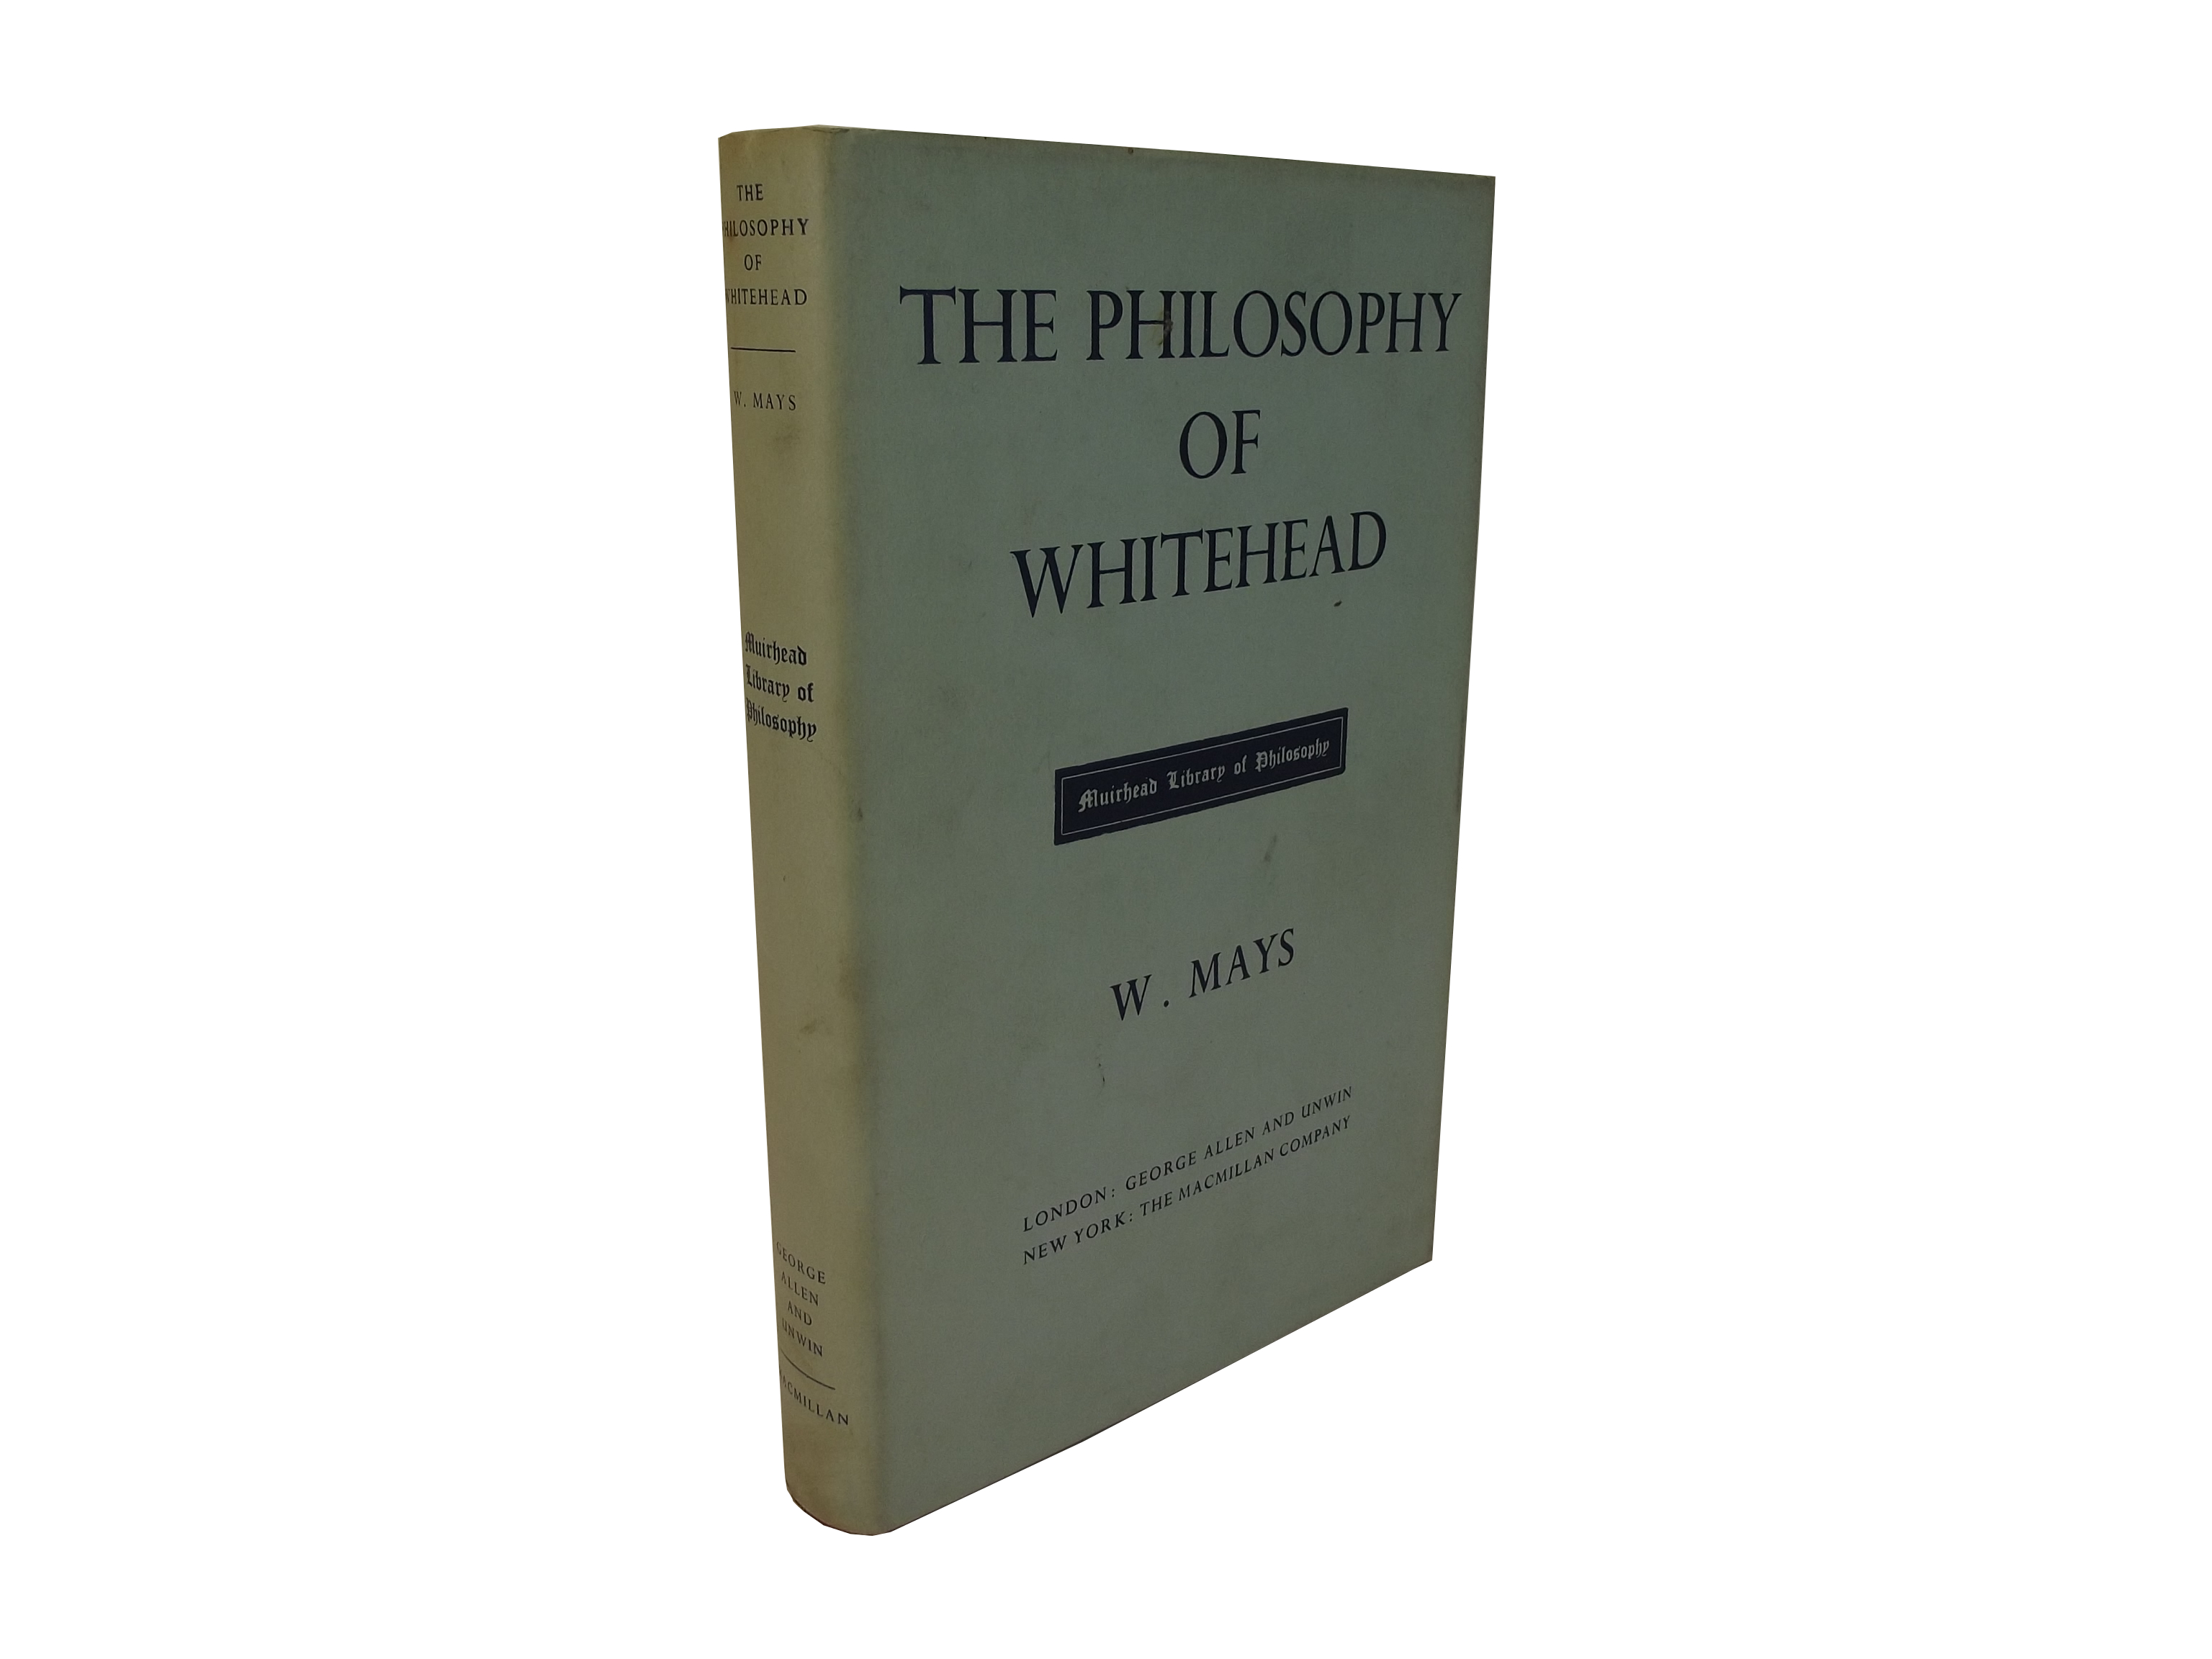 Philosophy of Whitehead